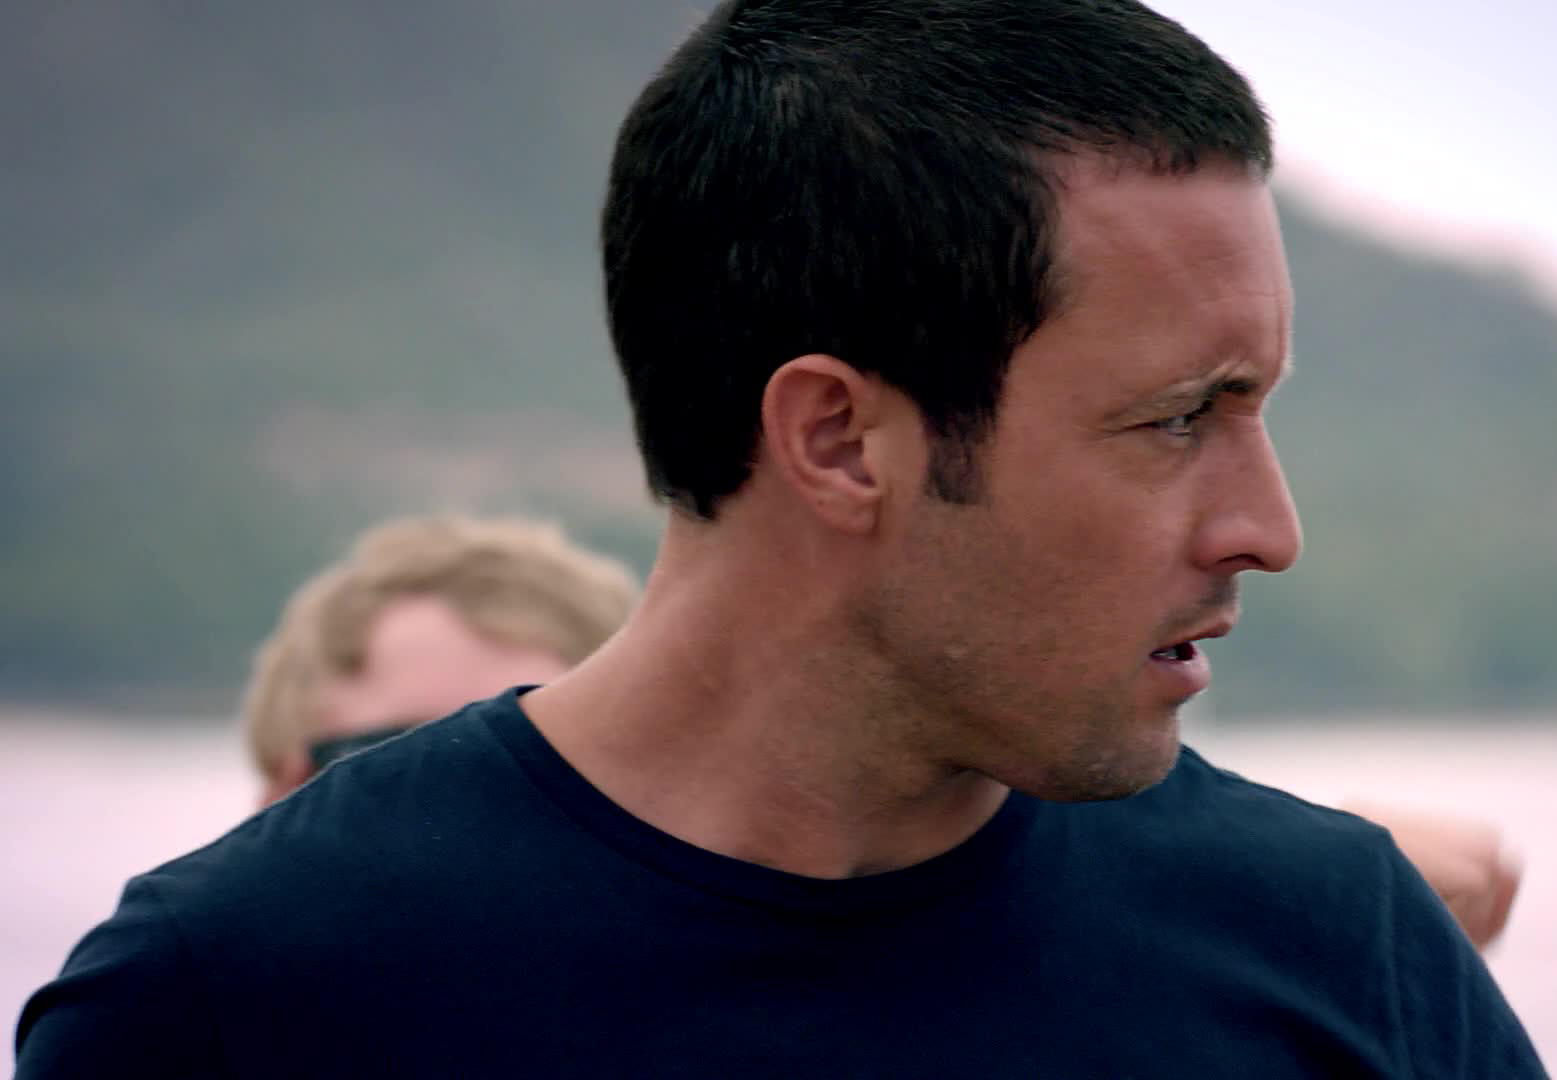 hair-322-5 | Alex O´Loughlin ~ An Intense Study